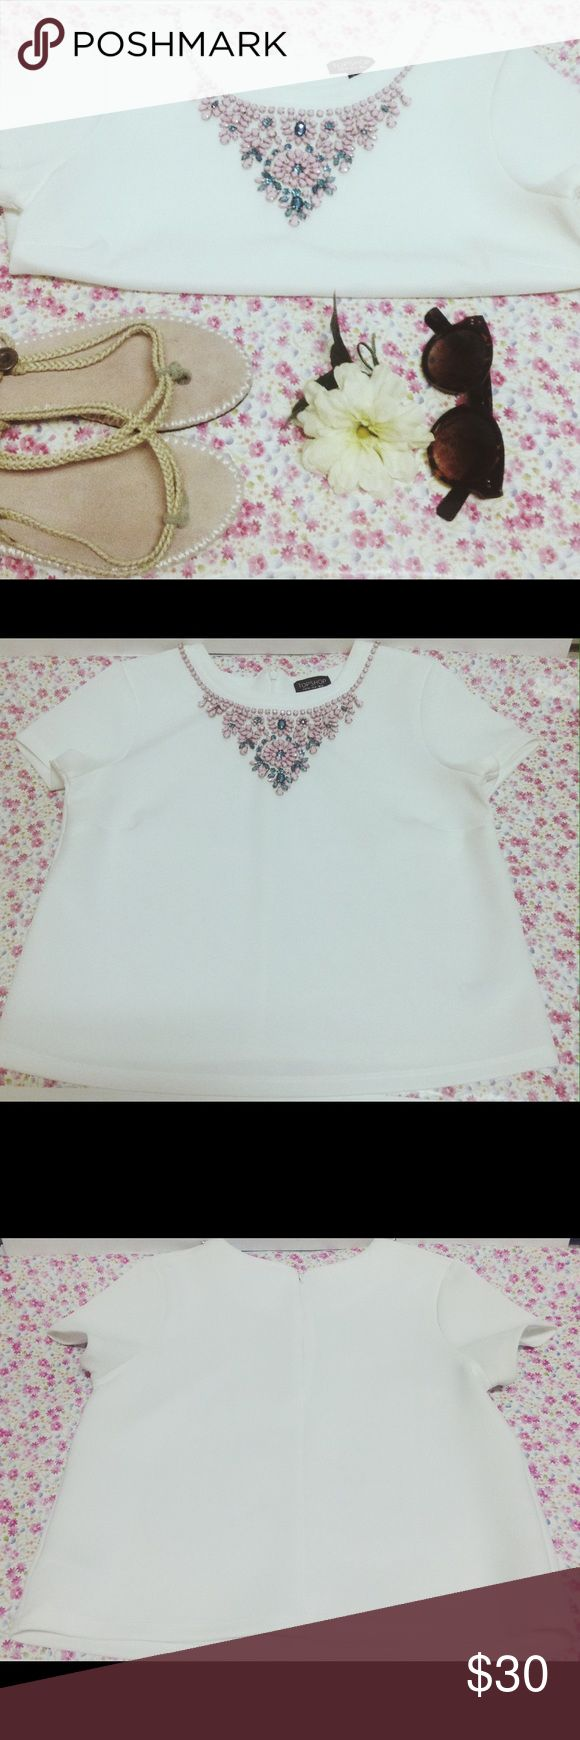 "TopShop White Jewel Embellished Top Bright white TopShop top with beautiful summertime pink and blue colored jewels zipper back. Only flaw is a very small knick on the back as pictured above ( hard to see) size 8. measurements chest 19"" length 20.5"" Topshop Tops Blouses"